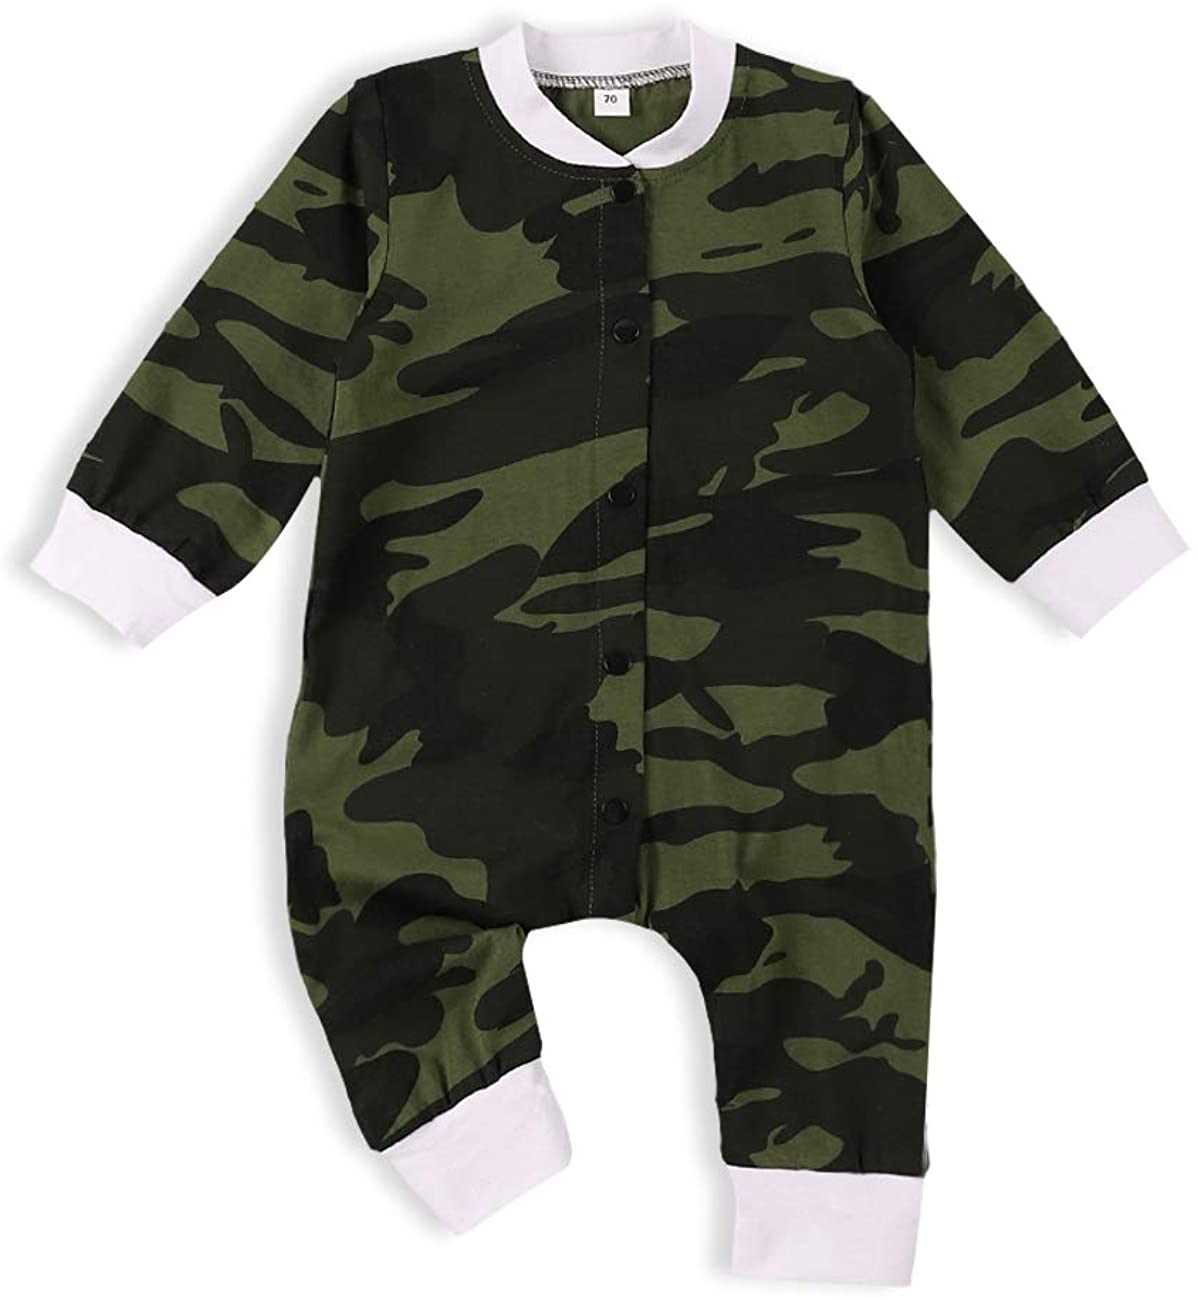 itkidboy Baby Boy Clothes Mamas Boy Camouflage Long Sleeve Sweatshirt Tops Pants Outfit Set